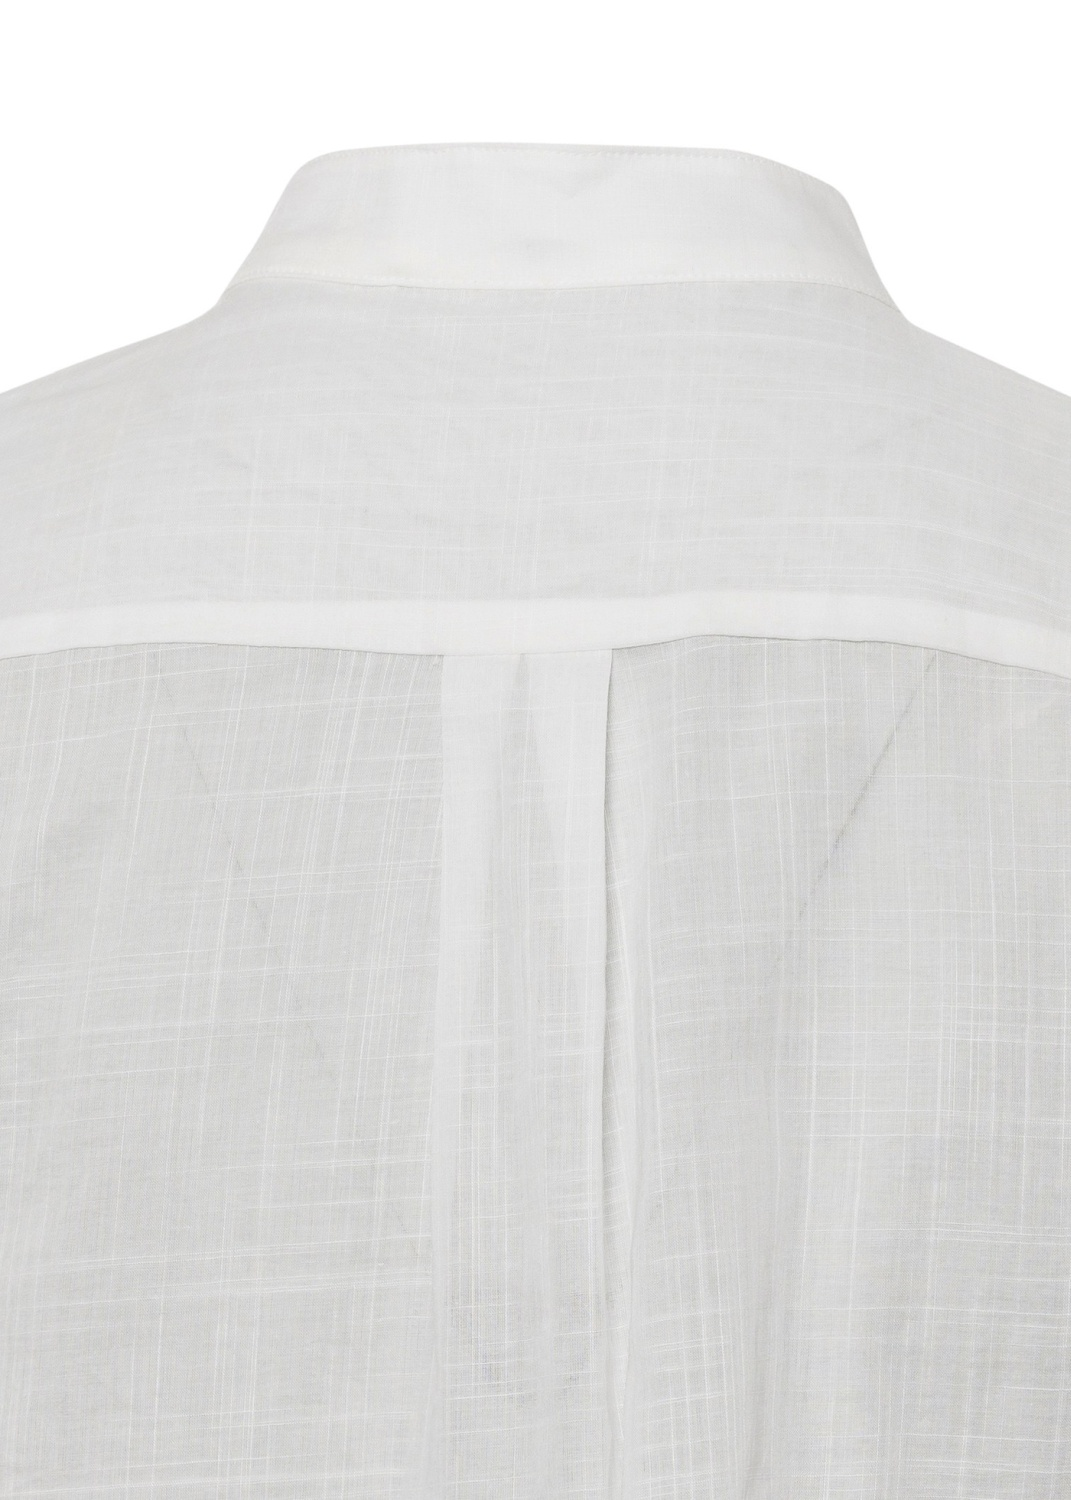 Lulu Scallop Blouse image number 3